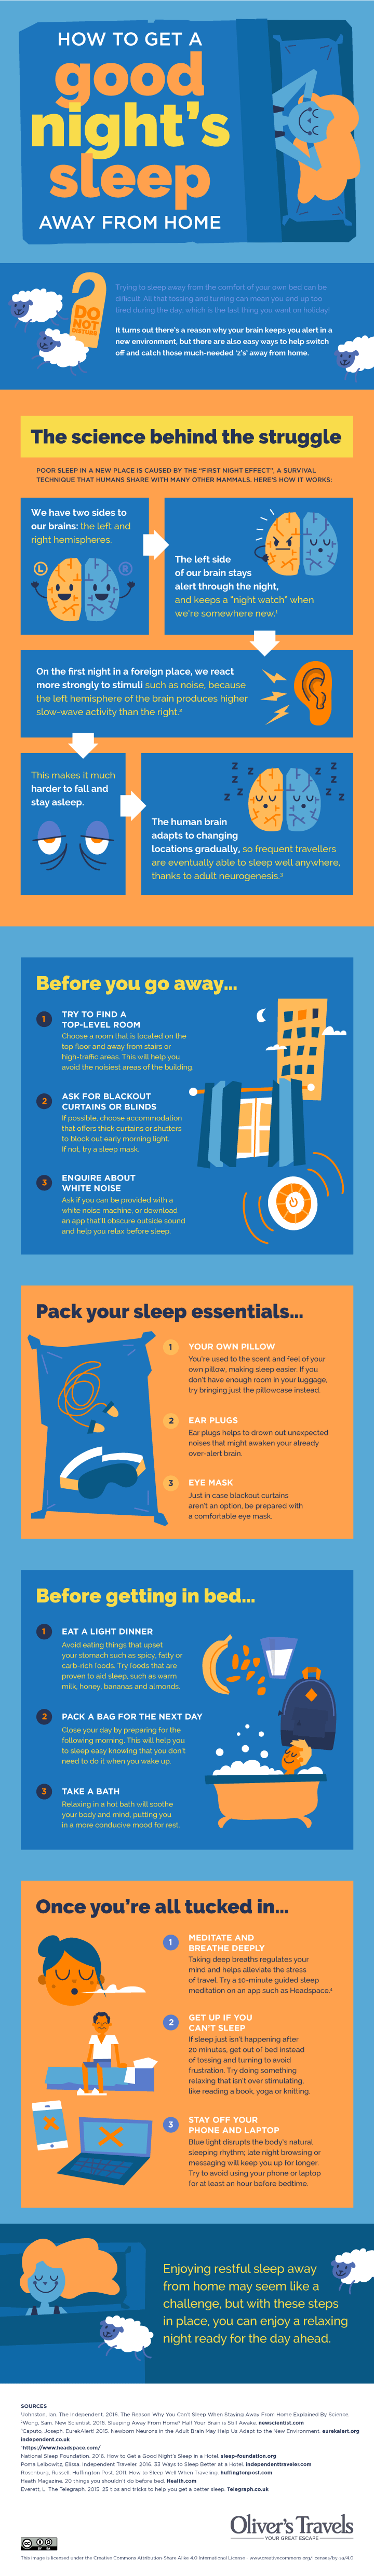 How to get a good night's sleep away from home